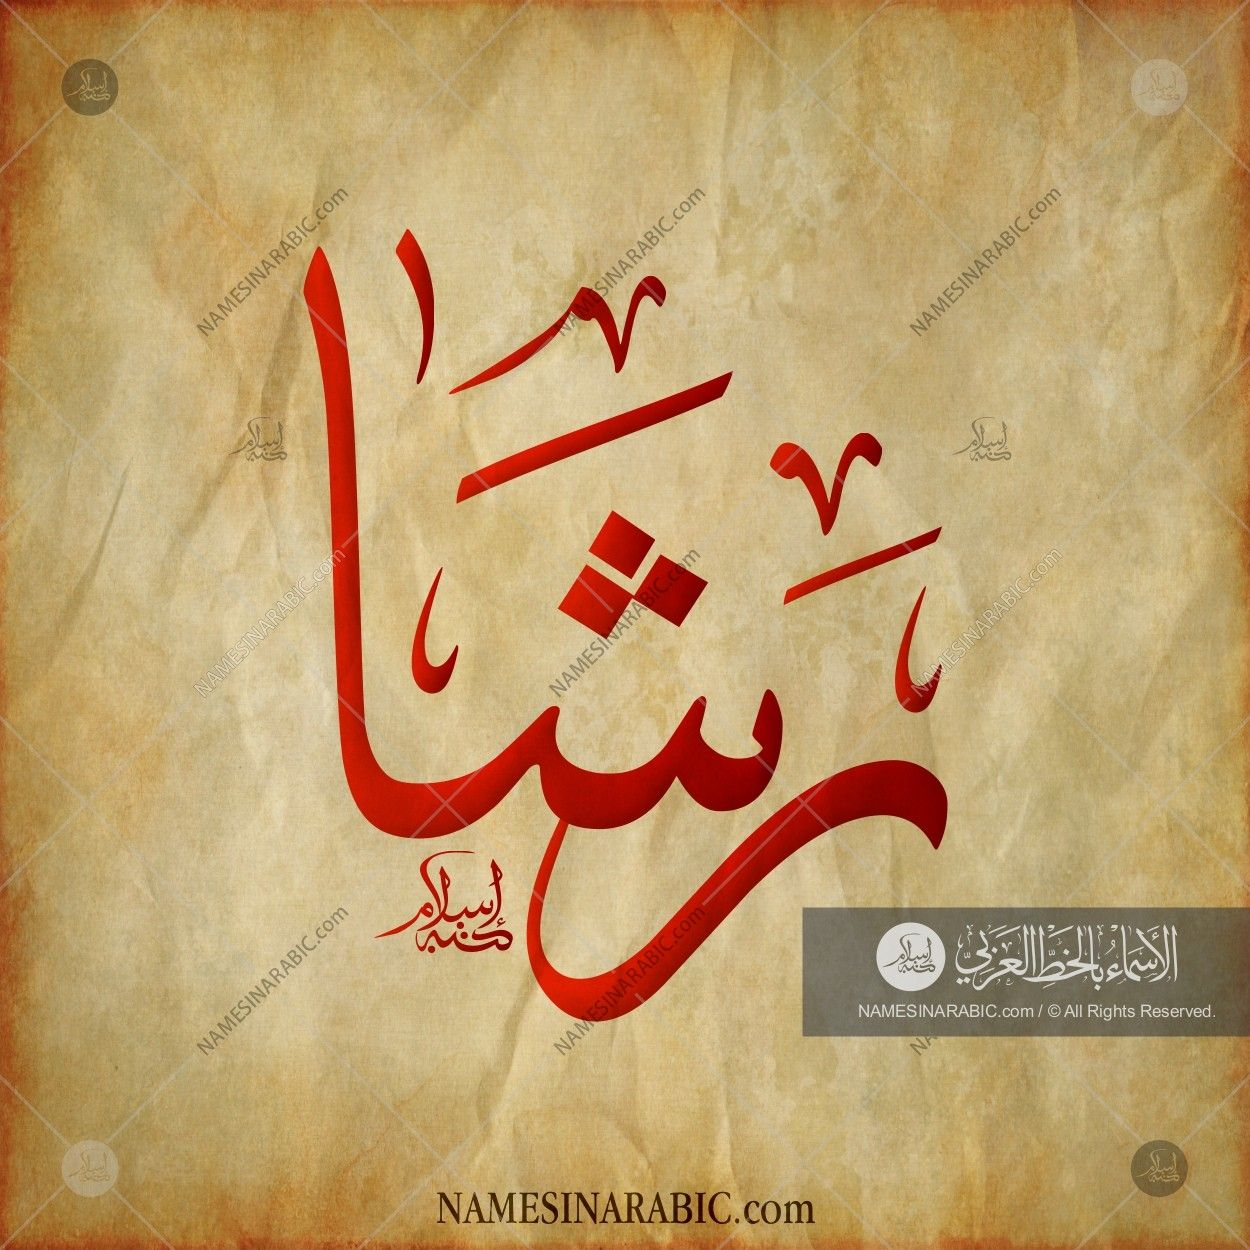 Rasha رشا Names In Arabic Calligraphy Name 1757 Calligraphy Name Name Design Art Calligraphy